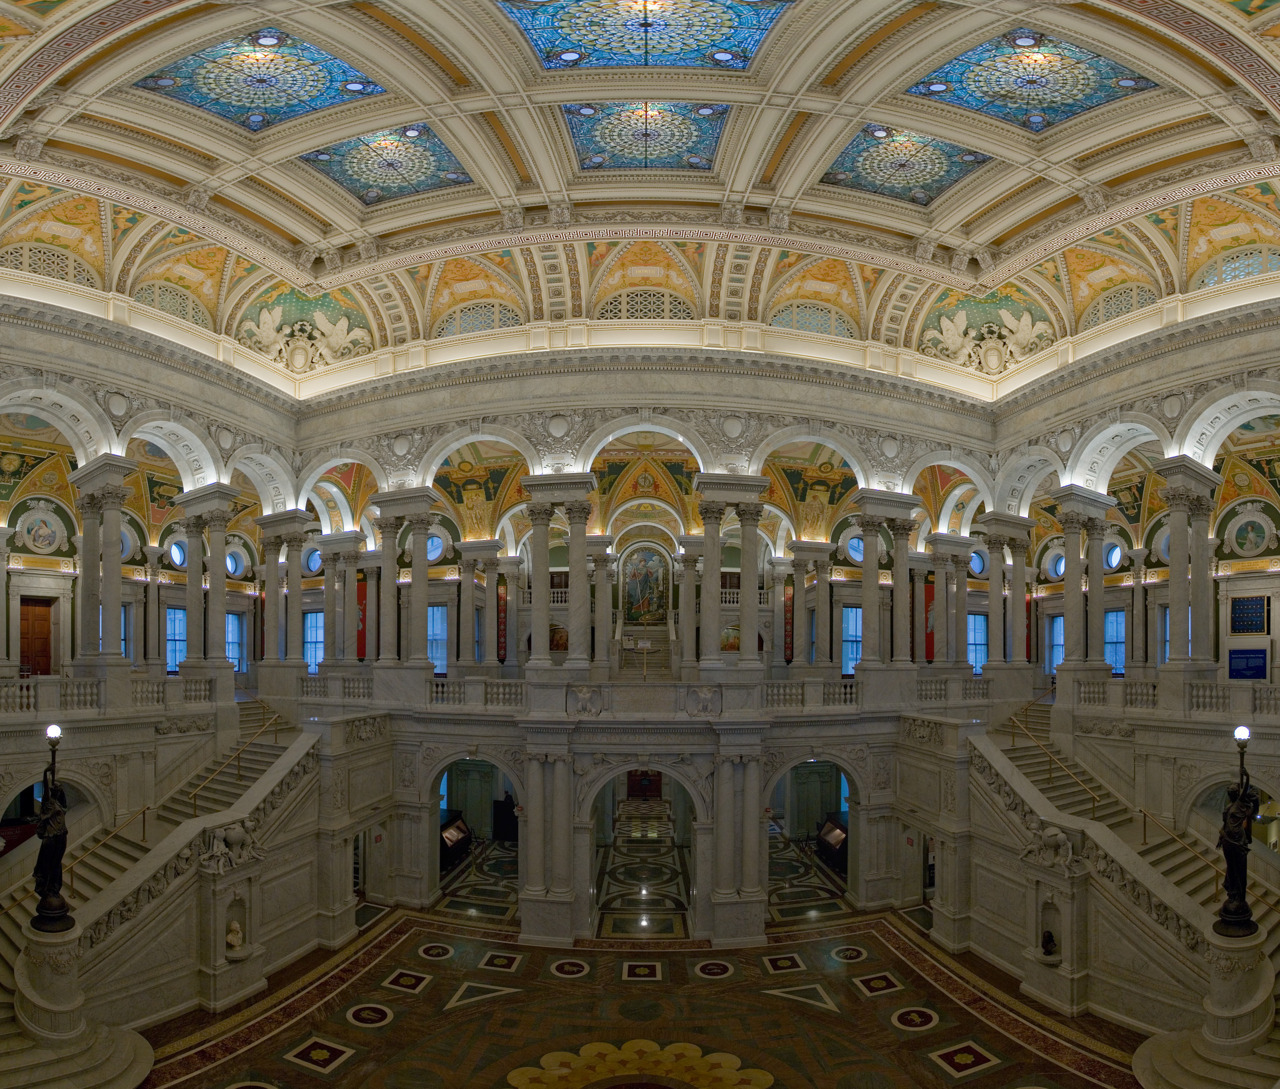 The U.S. Library of Congress tis he largest library in the world by shelf space and number of books. (Photo via Wikimedia Commons)